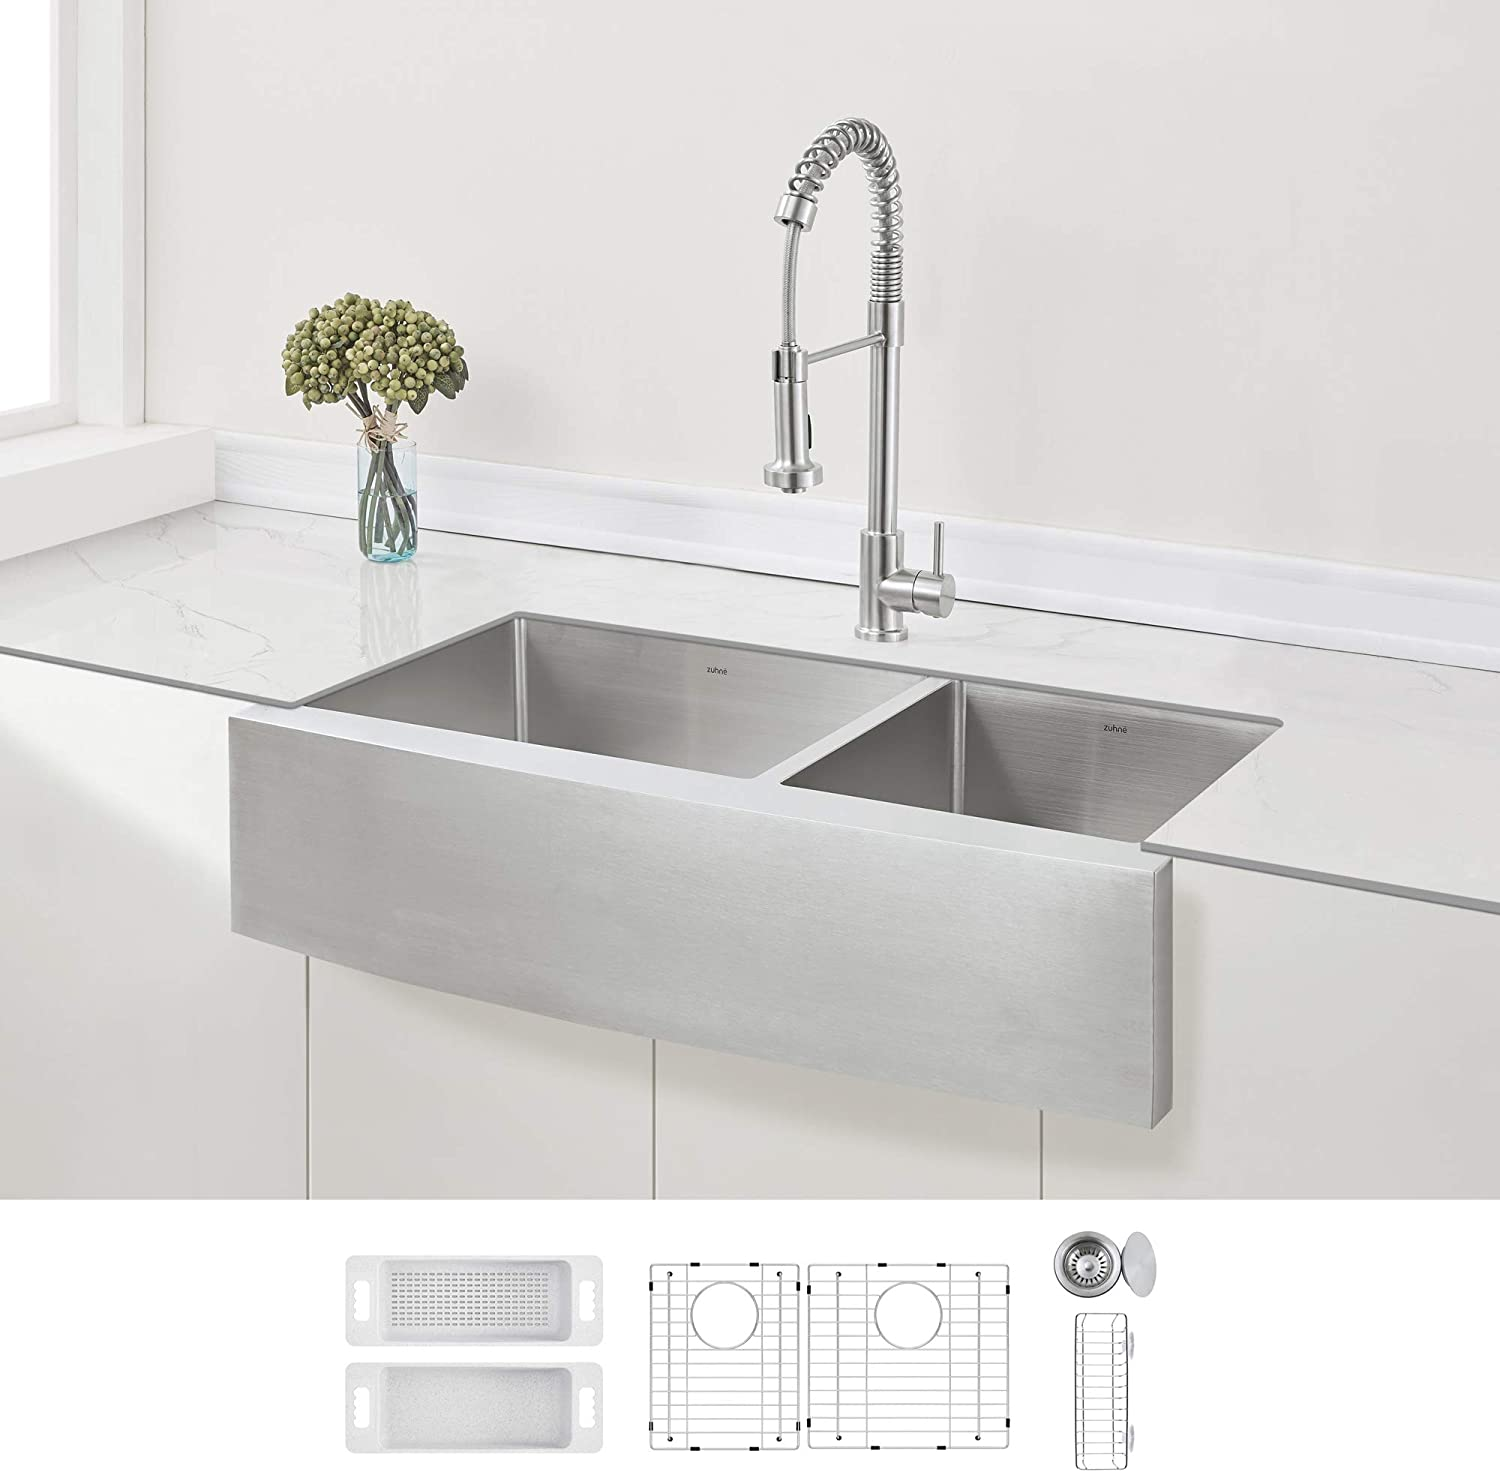 Zuhne Stainless Steel Double Basin Farmhouse Sink 60 40 36 Inch Curved Apron Front